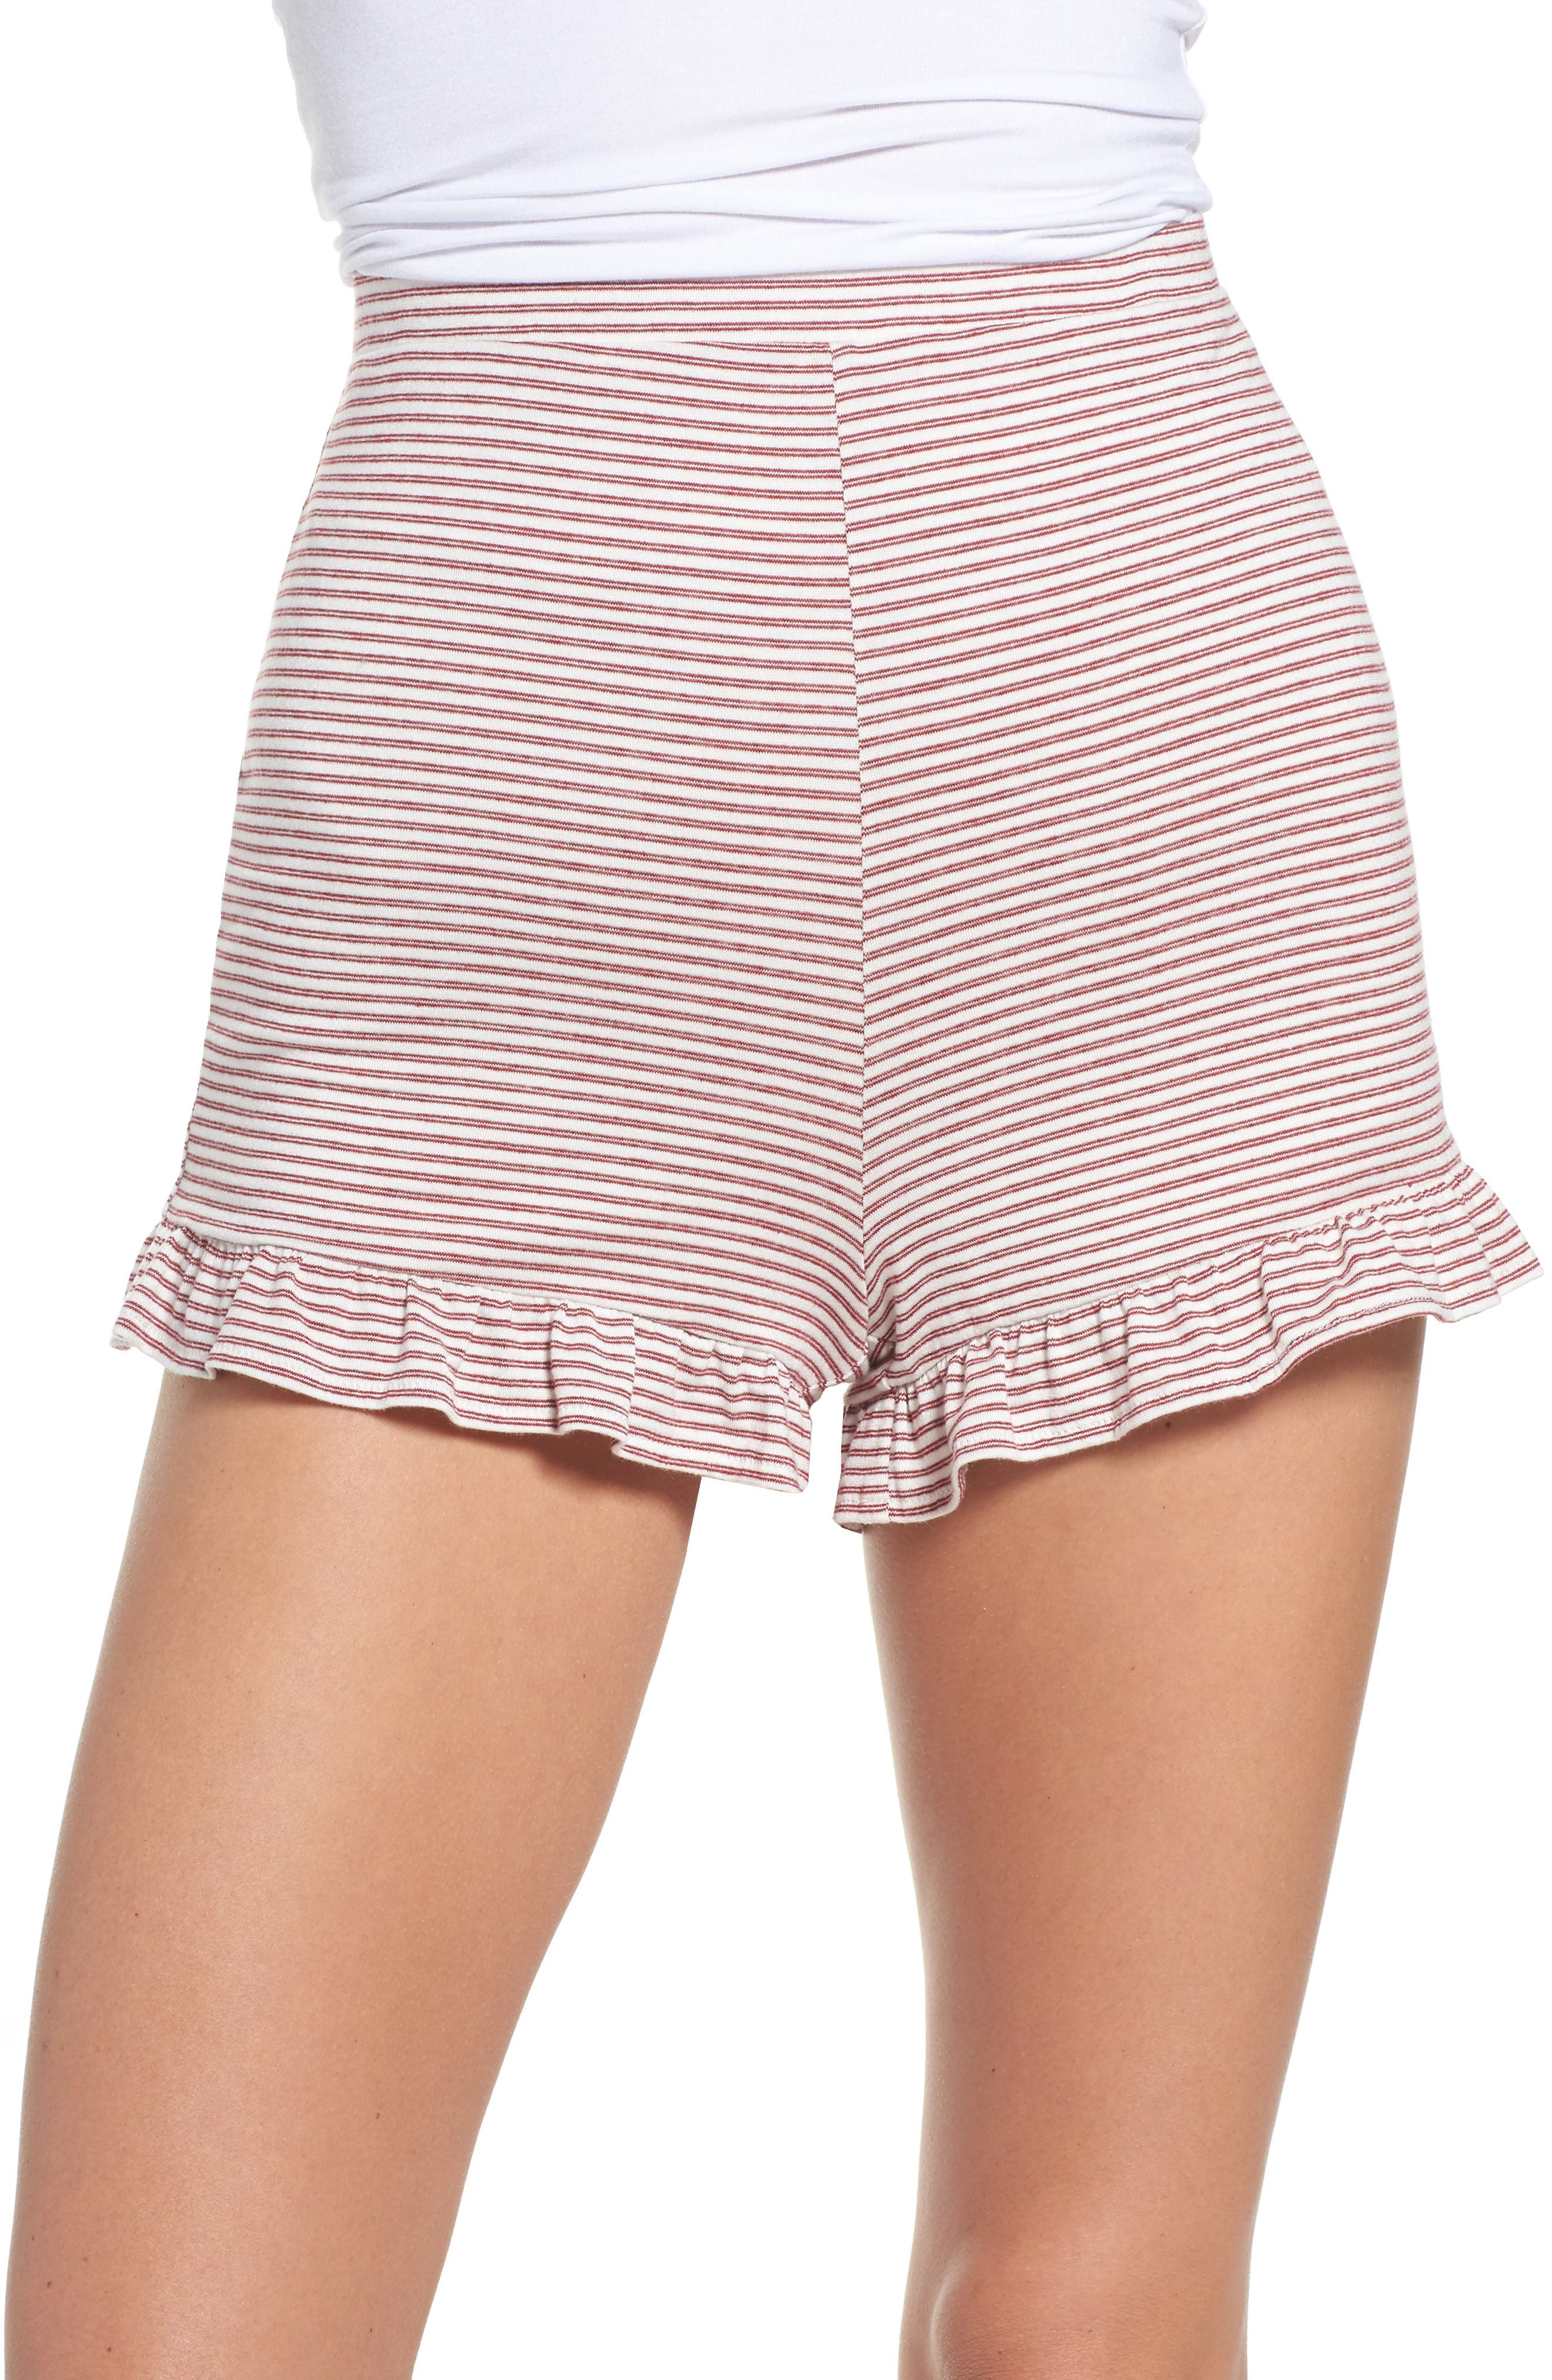 Embry Ruffle Hem Lounge Shorts,                         Main,                         color, Red/ White